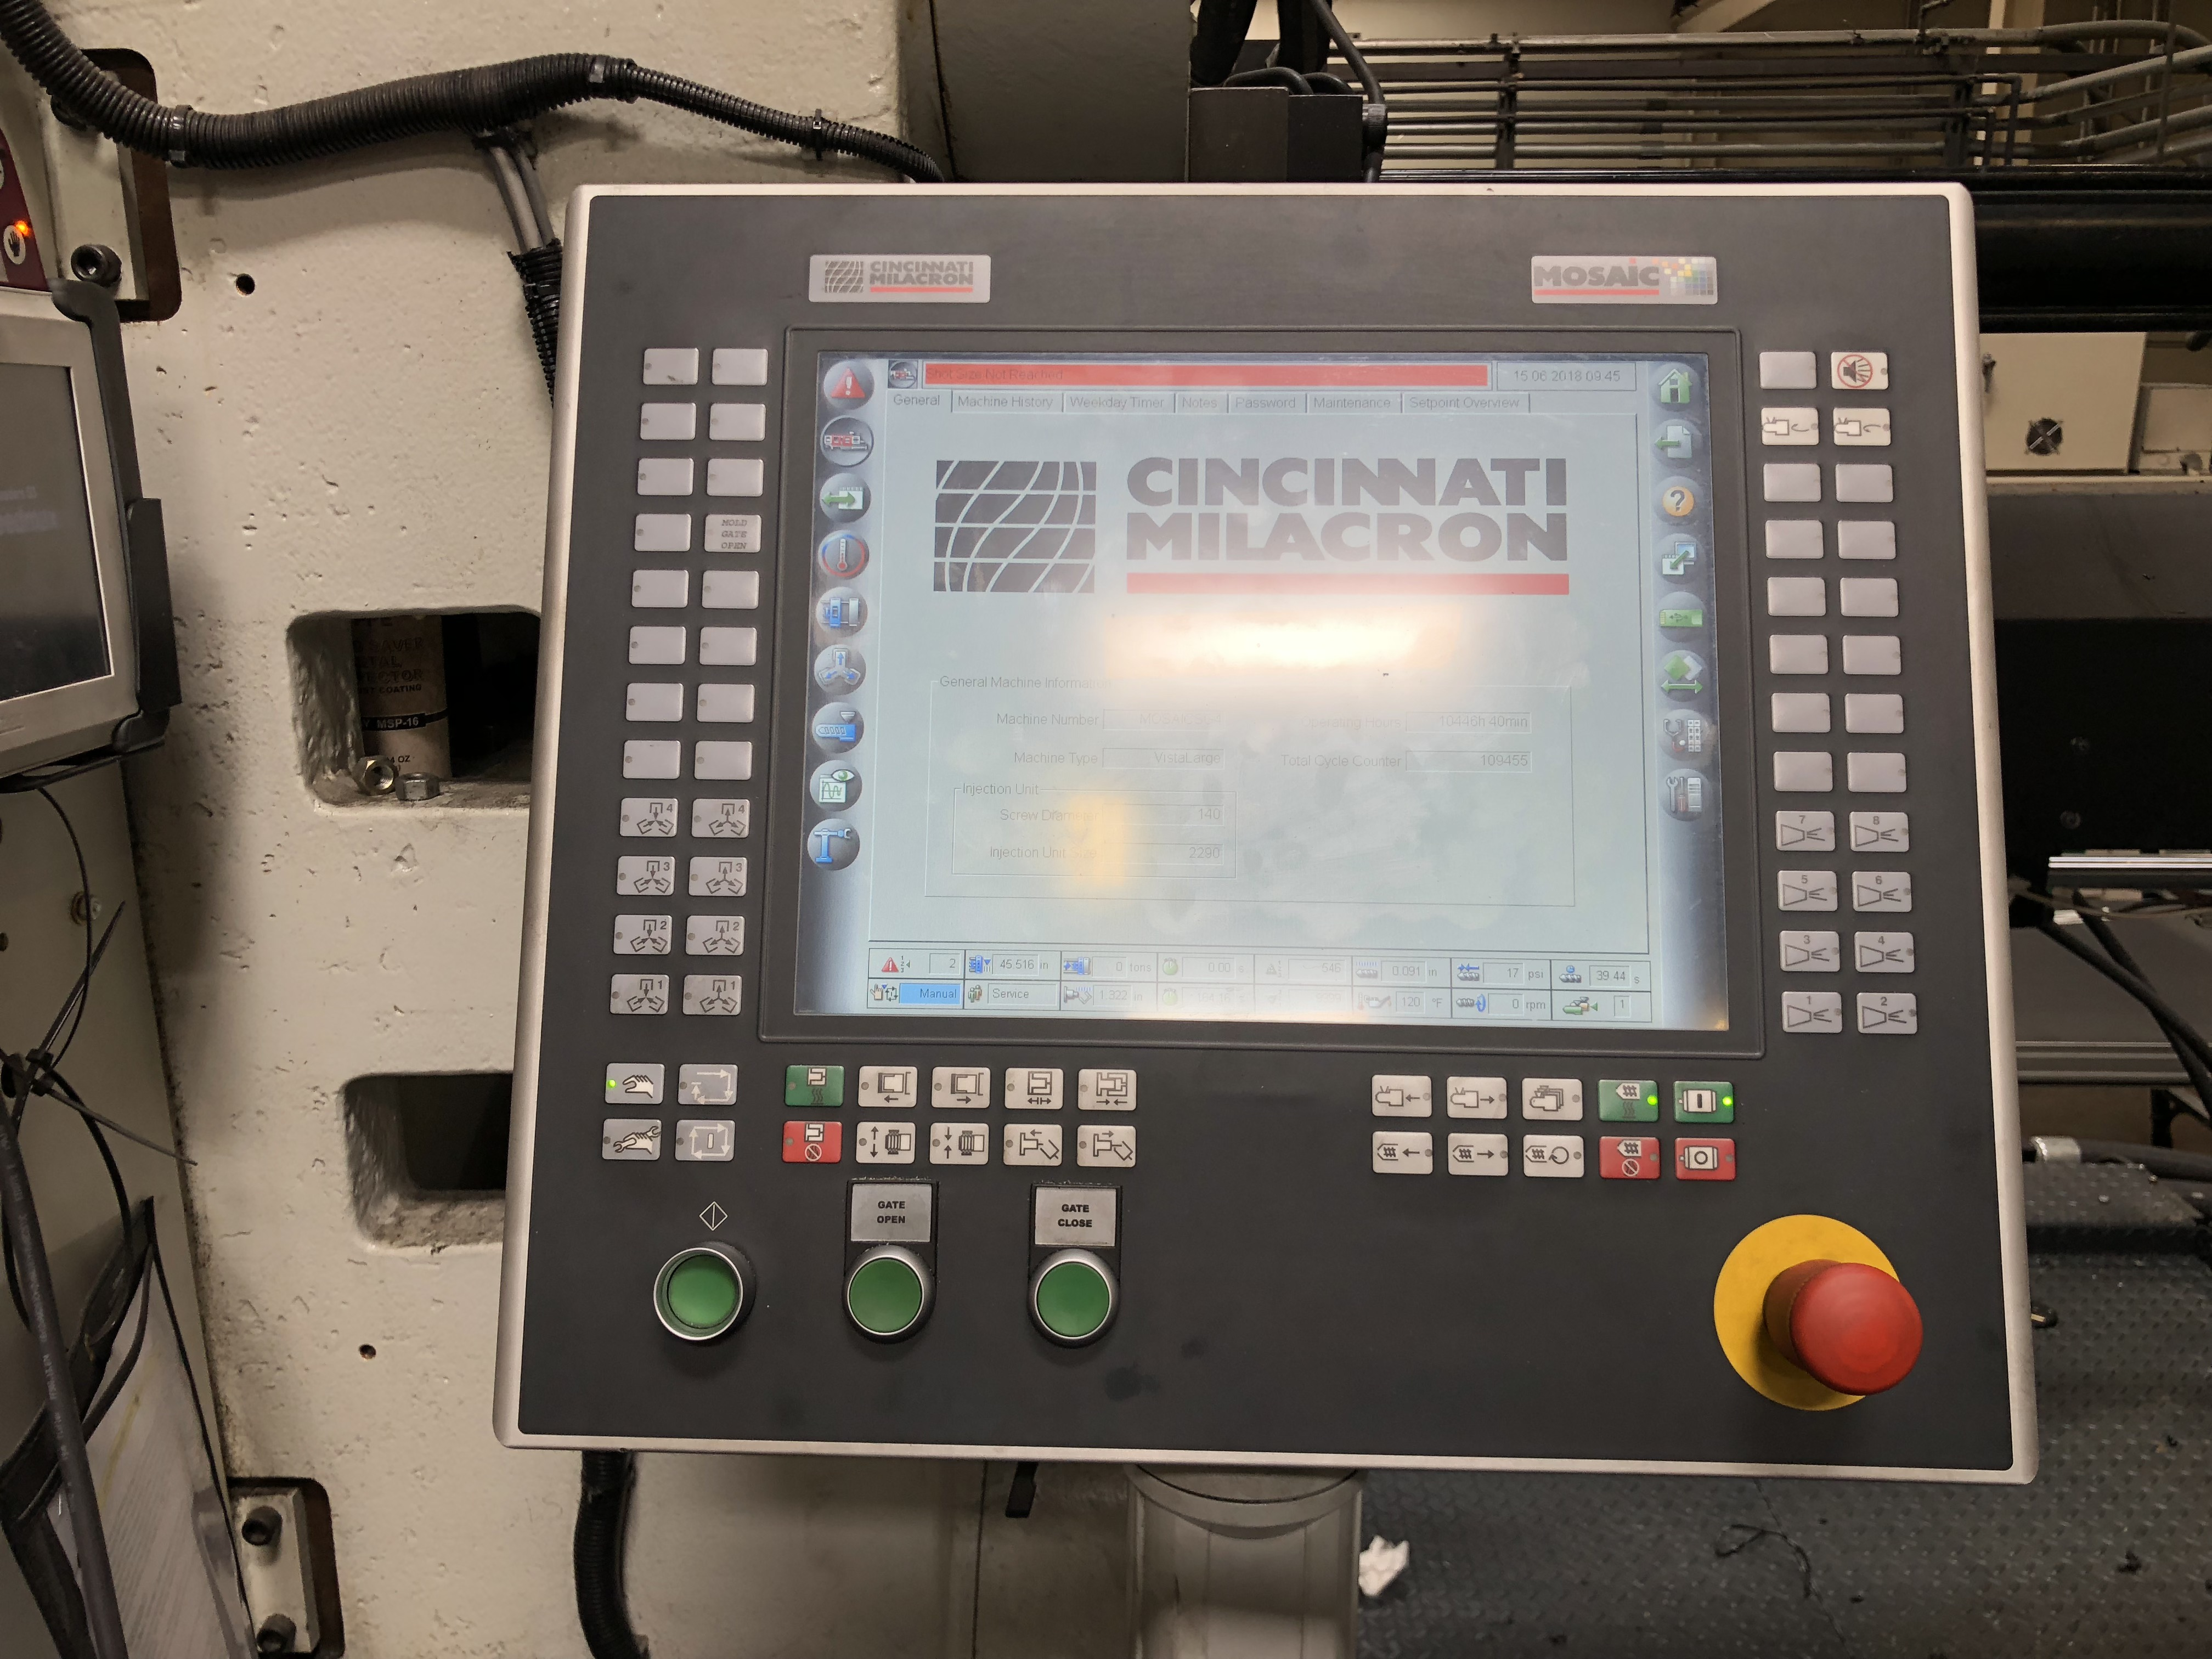 cincinnati milacron model vl 850 362 injection molding machine rh internationalpack com Cincinnati Milacron Injection Molding Cincinnati Milacron Manual Milling Machines